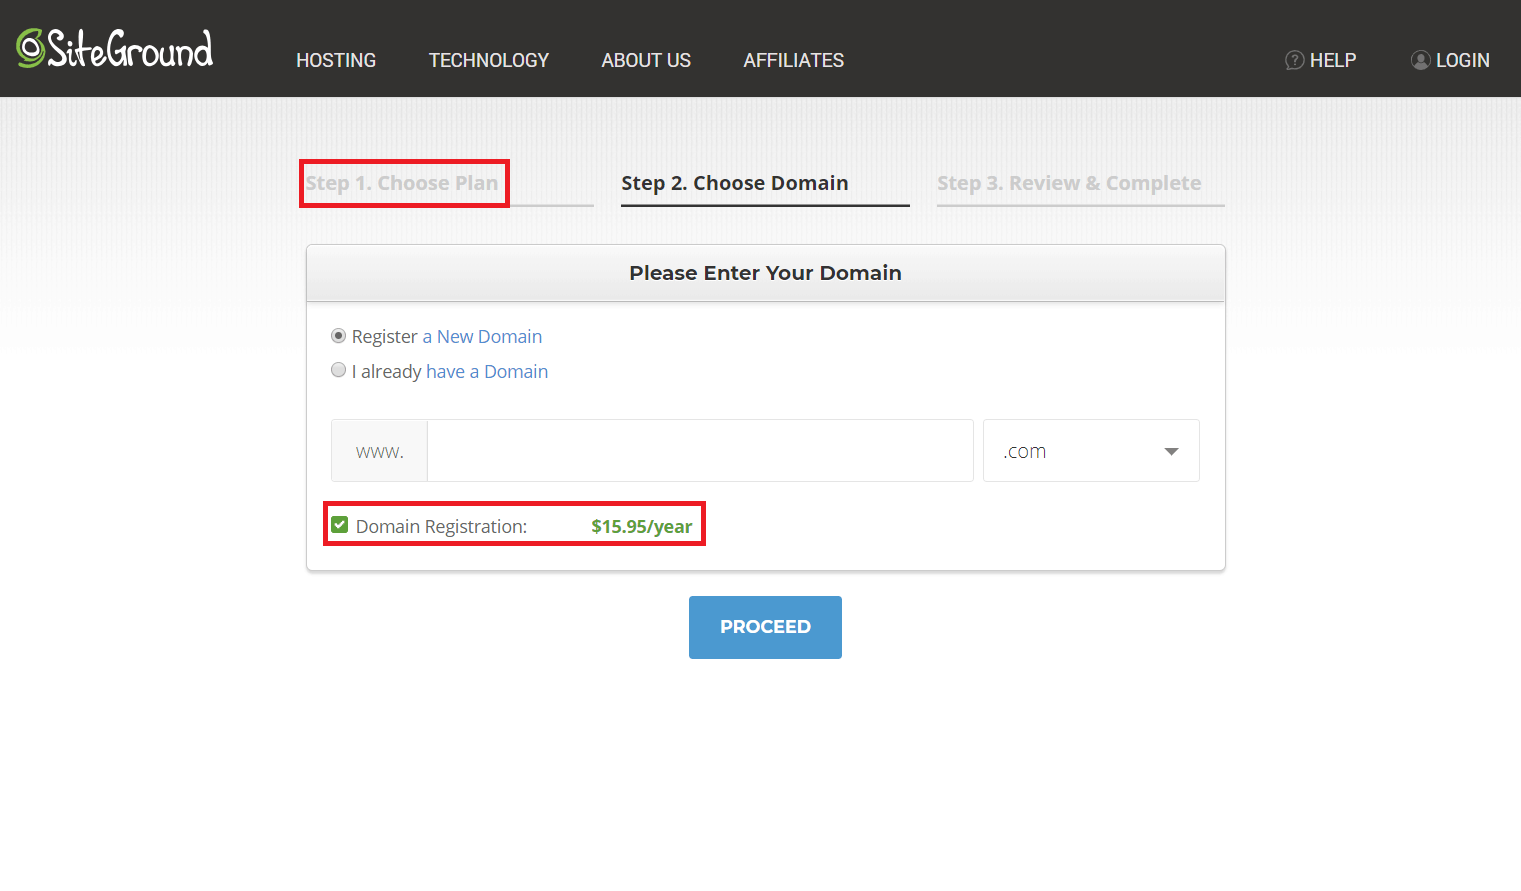 How to Create a New Account with SiteGround-image2